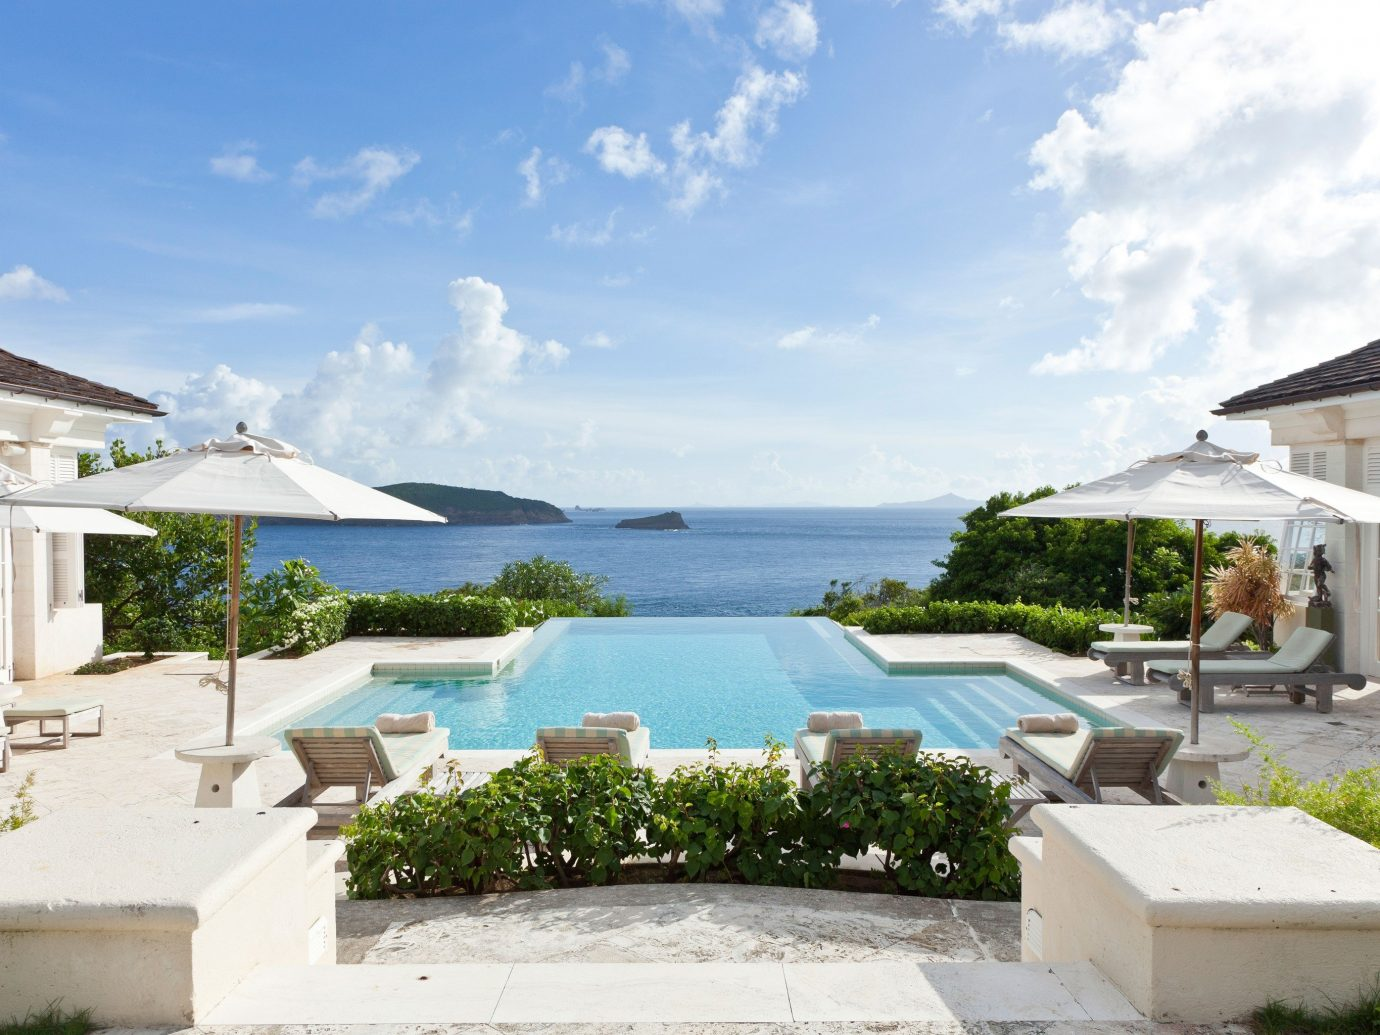 Luxury Travel Trip Ideas sky outdoor house property swimming pool estate Villa Resort vacation home real estate residential area mansion cottage condominium stone sign